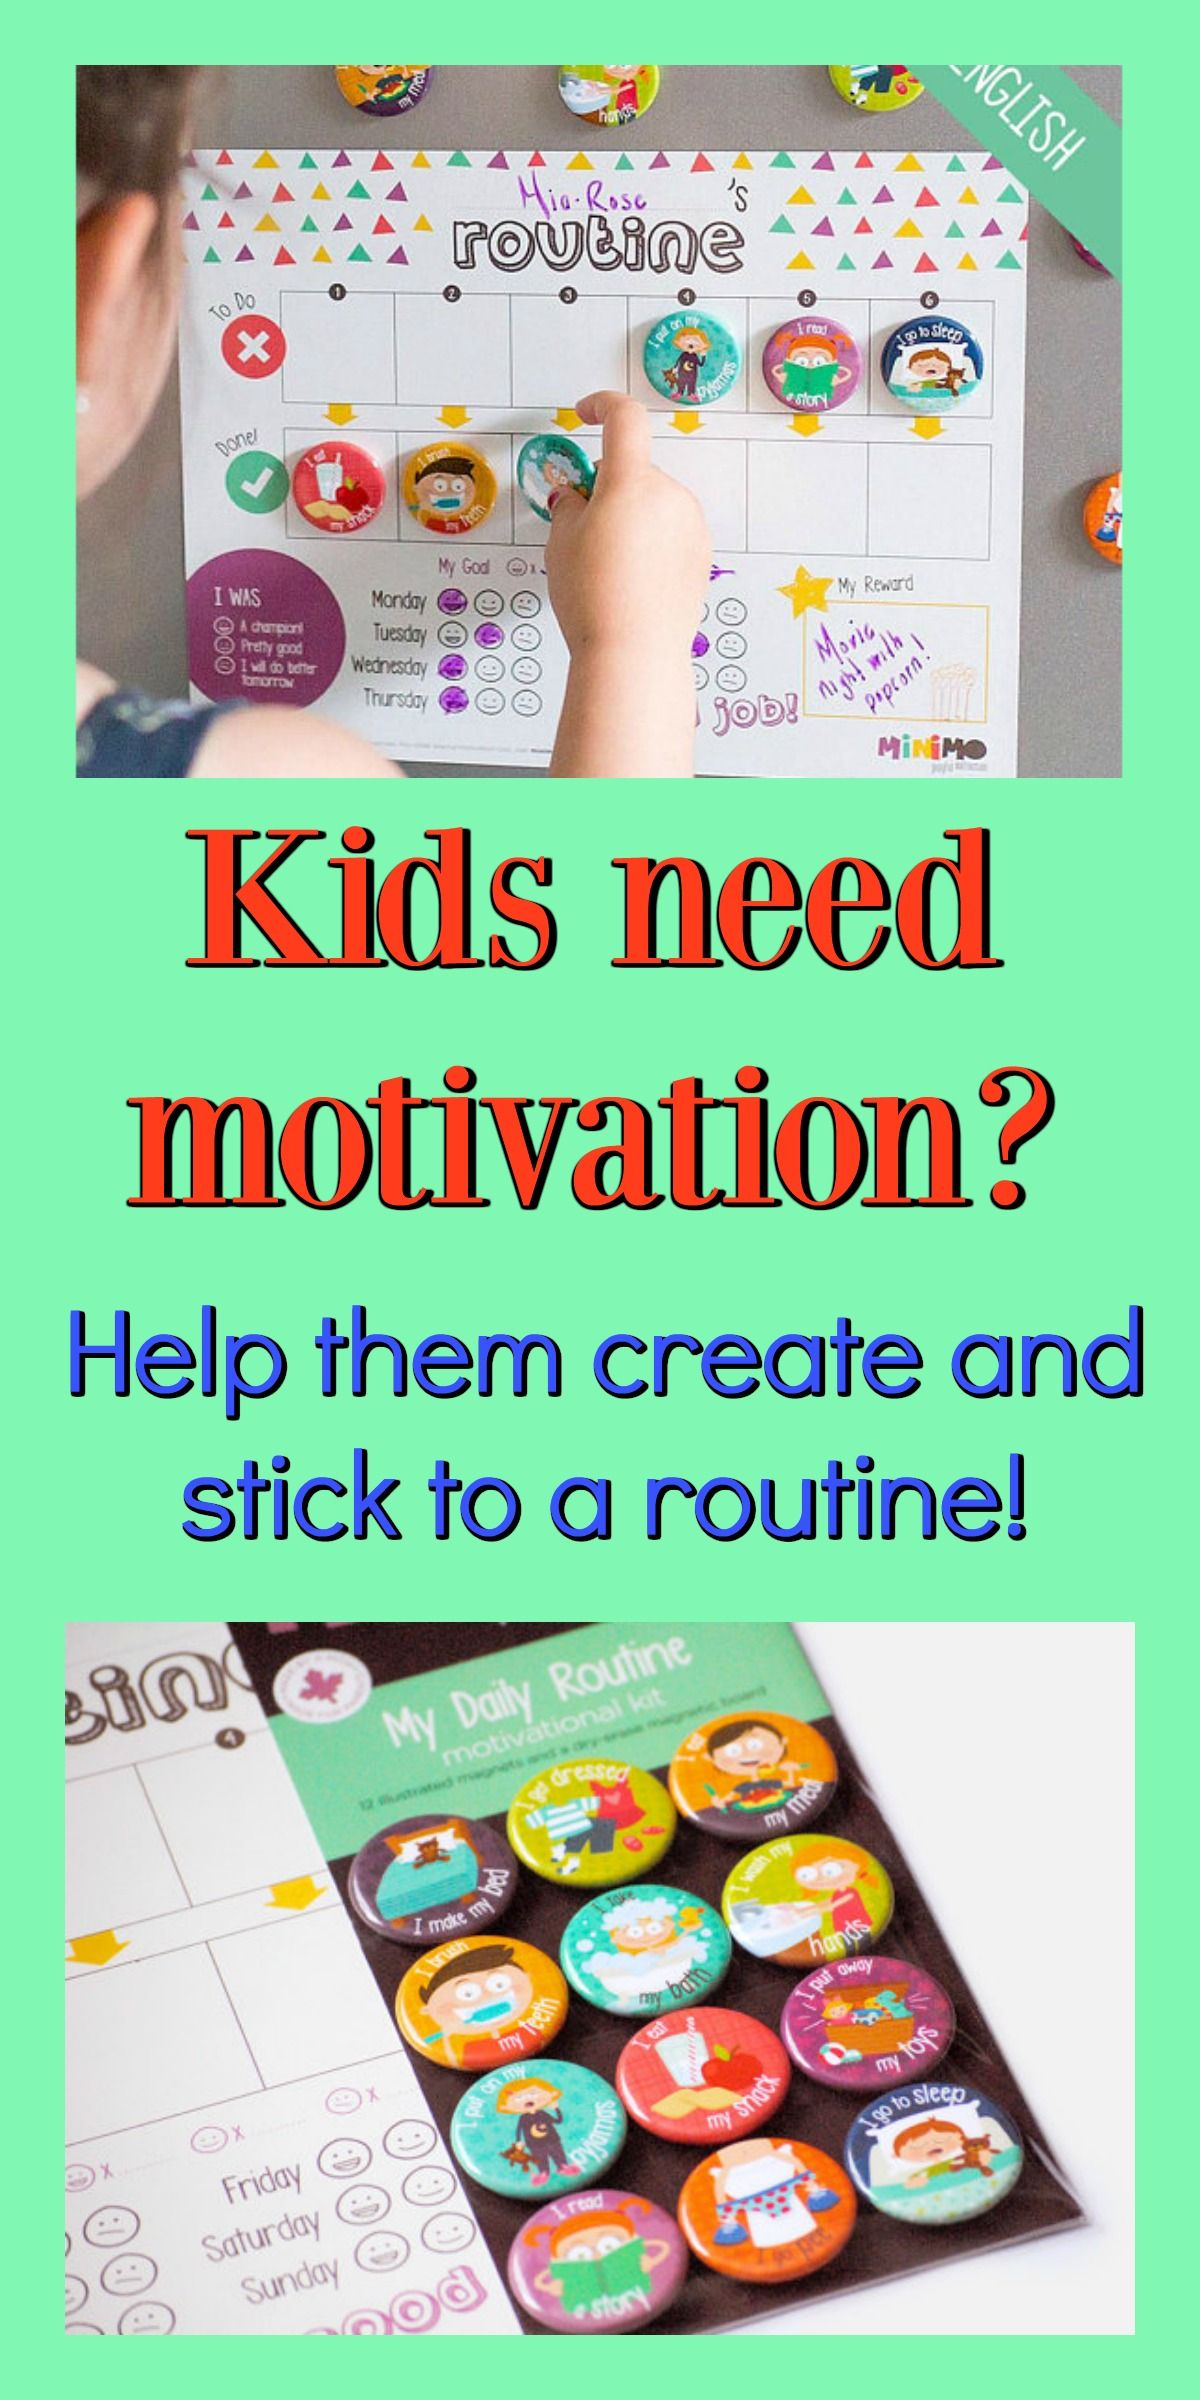 I Need Help Getting My Kids Motivated And Focused